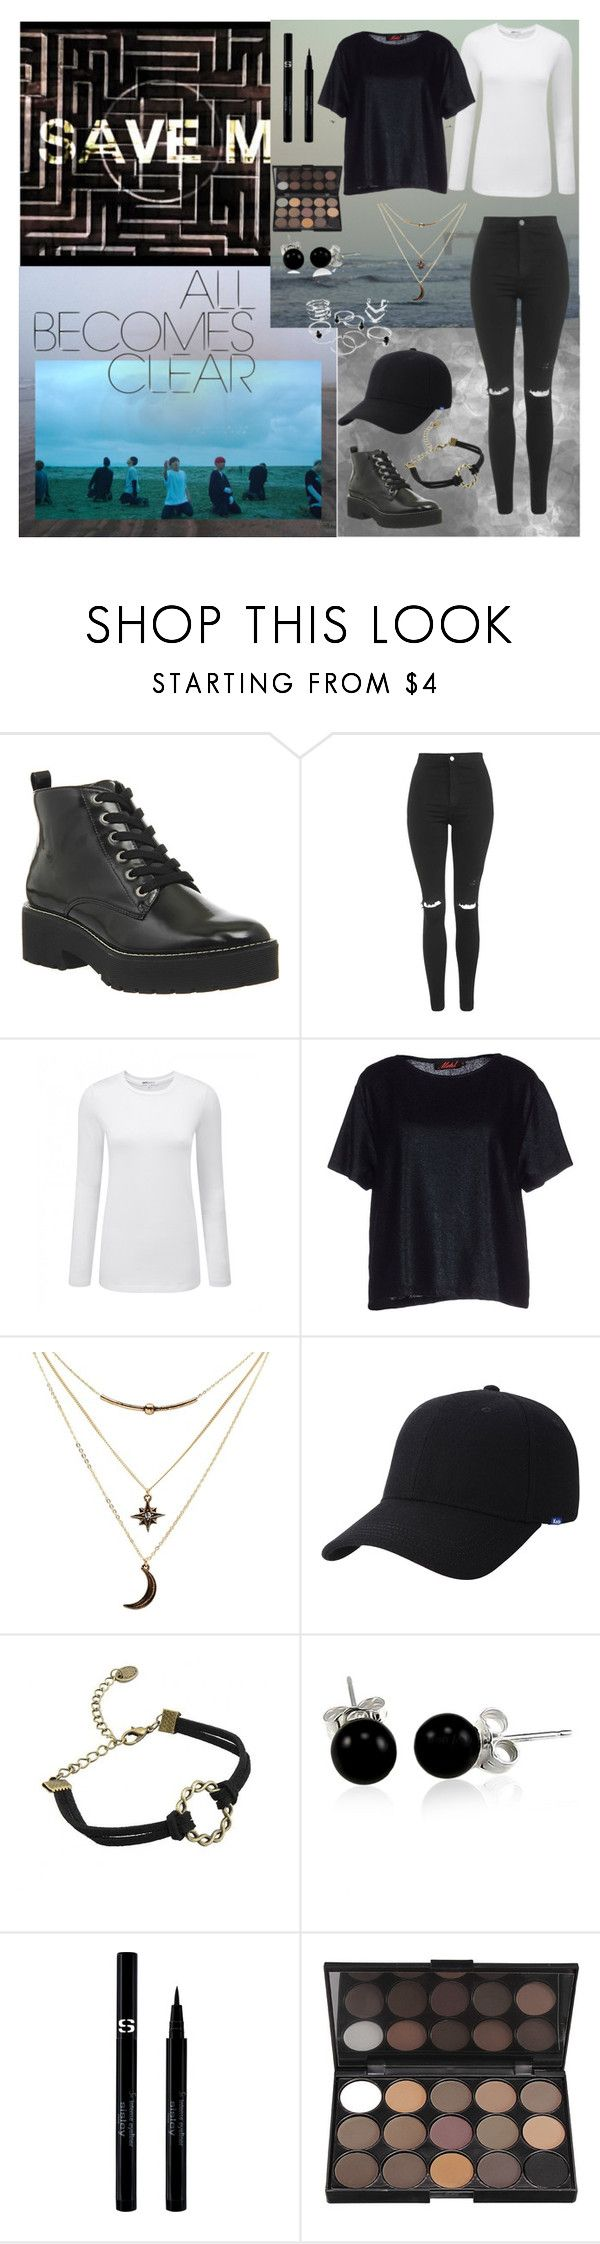 """BTS 'Save Me' MV inspired outfit"" by lina0401 ❤ liked on Polyvore featuring Office, Topshop, Motel, Charlotte Russe, Keds, Bling Jewelry and Sisley"